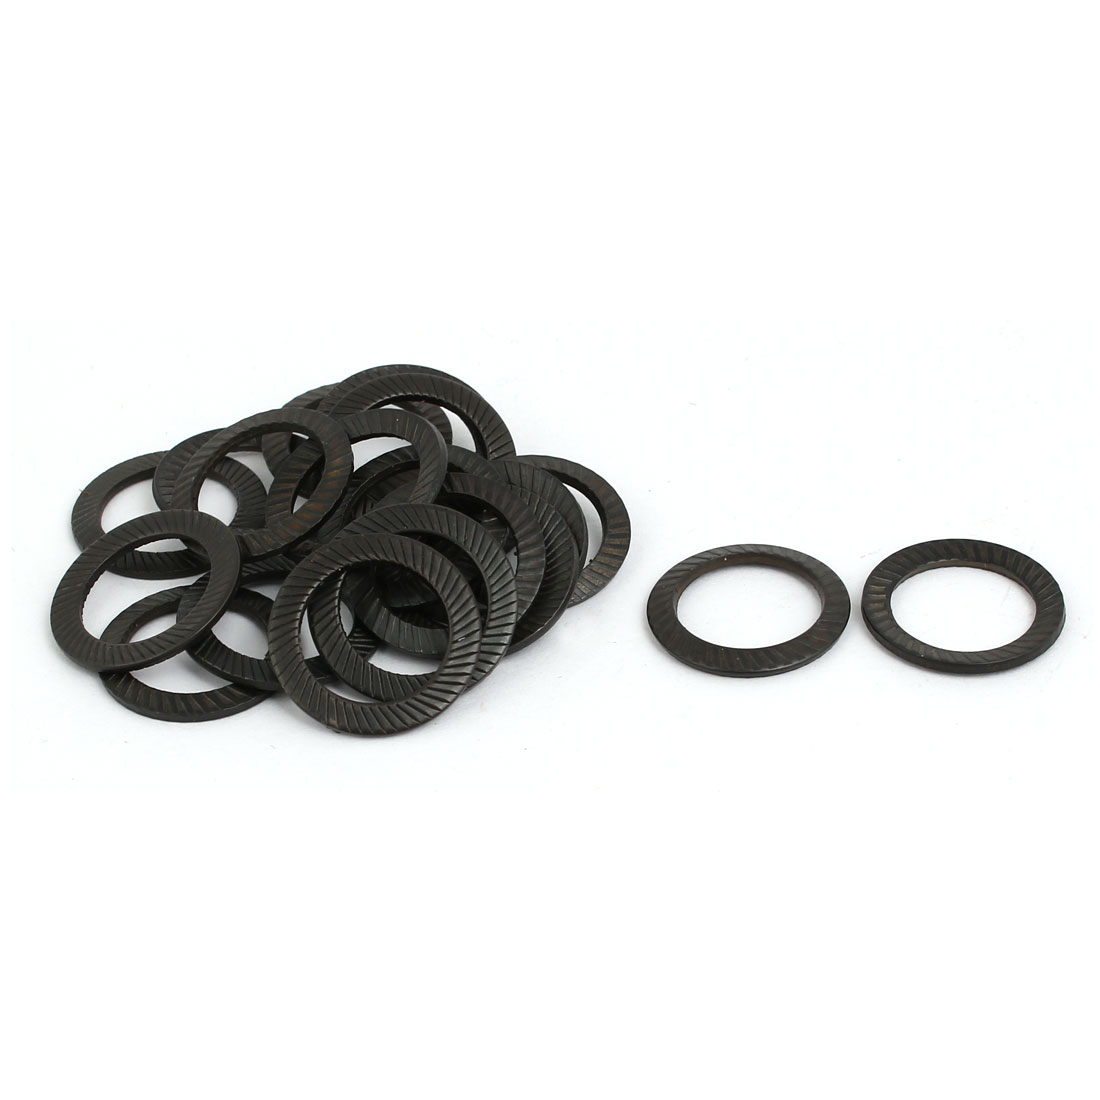 12mm Inner Diameter Carbon Steel Dual Serrated Conical Washer Black 20pcs